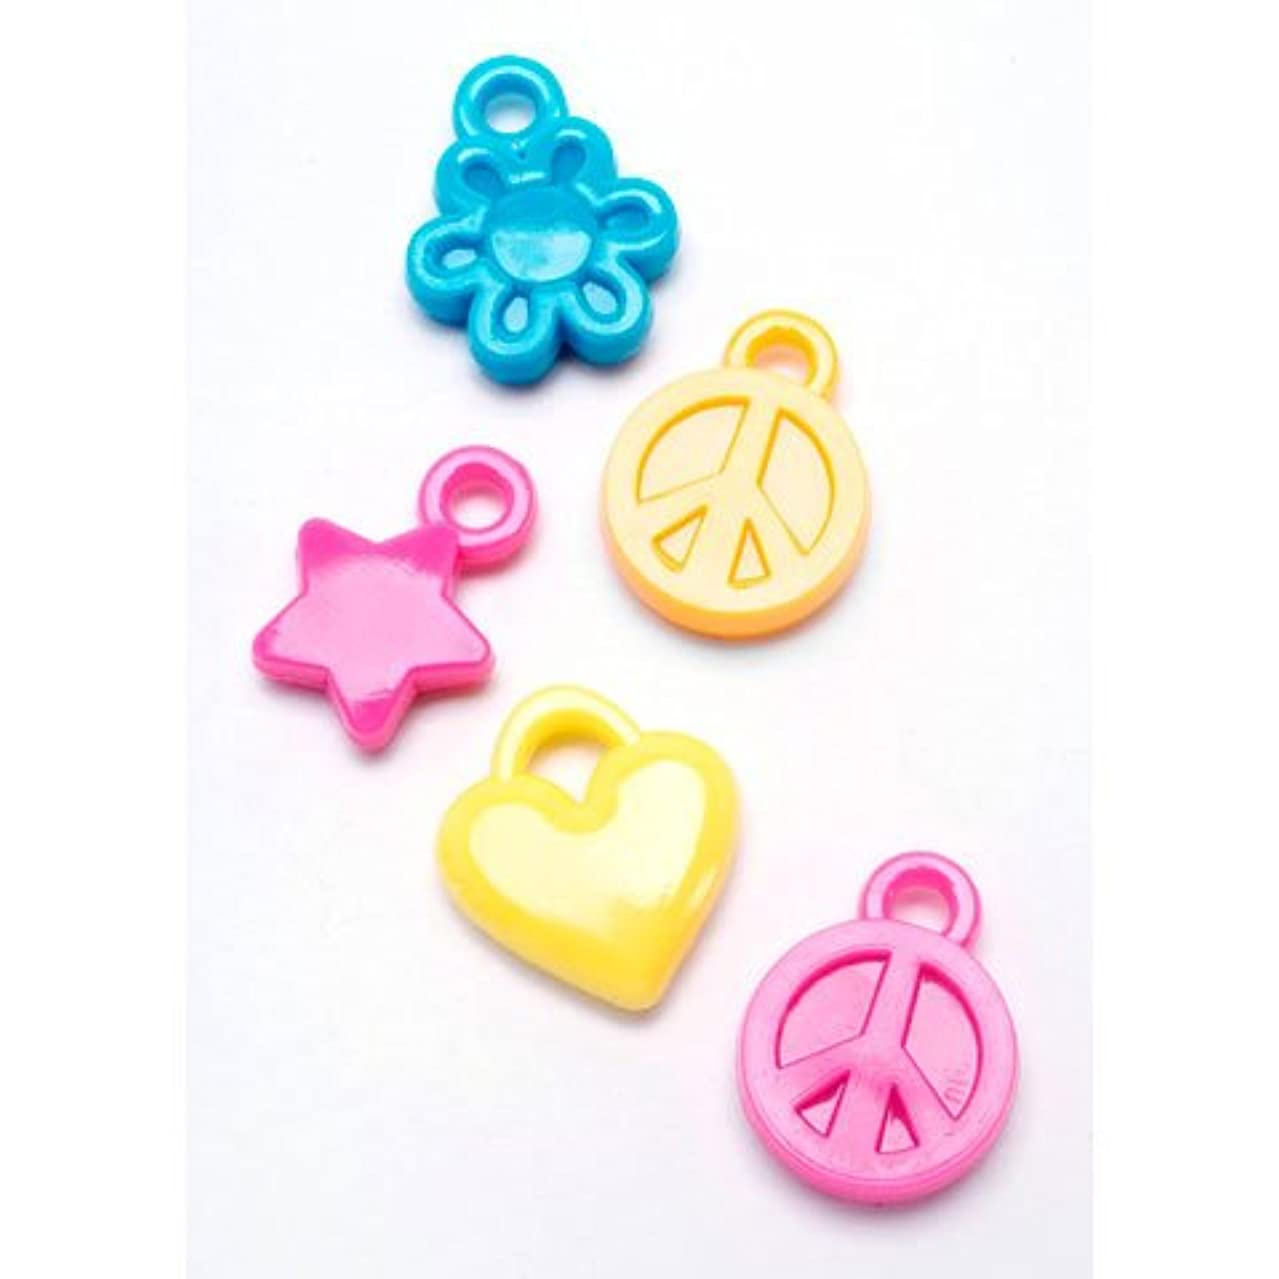 Bulk Buy: Darice DIY Crafts Plastic Charms Flower, Heart, and Peace Sign Assorted Color 100 pieces (3-Pack) 0726-93